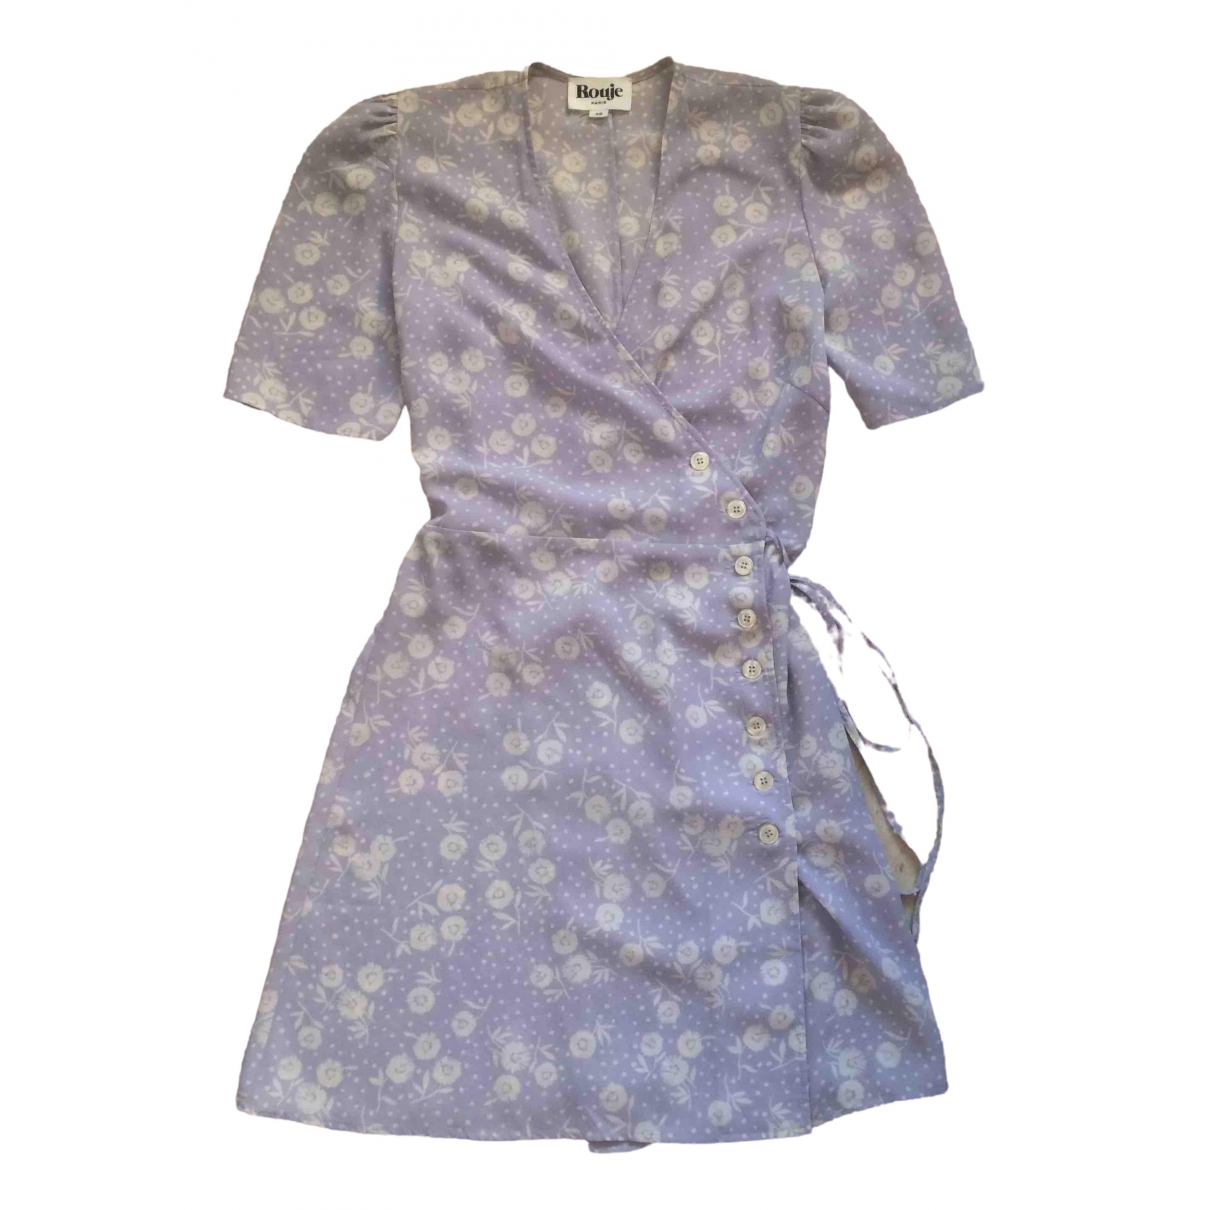 Rouje Gabinette Purple dress for Women 36 FR